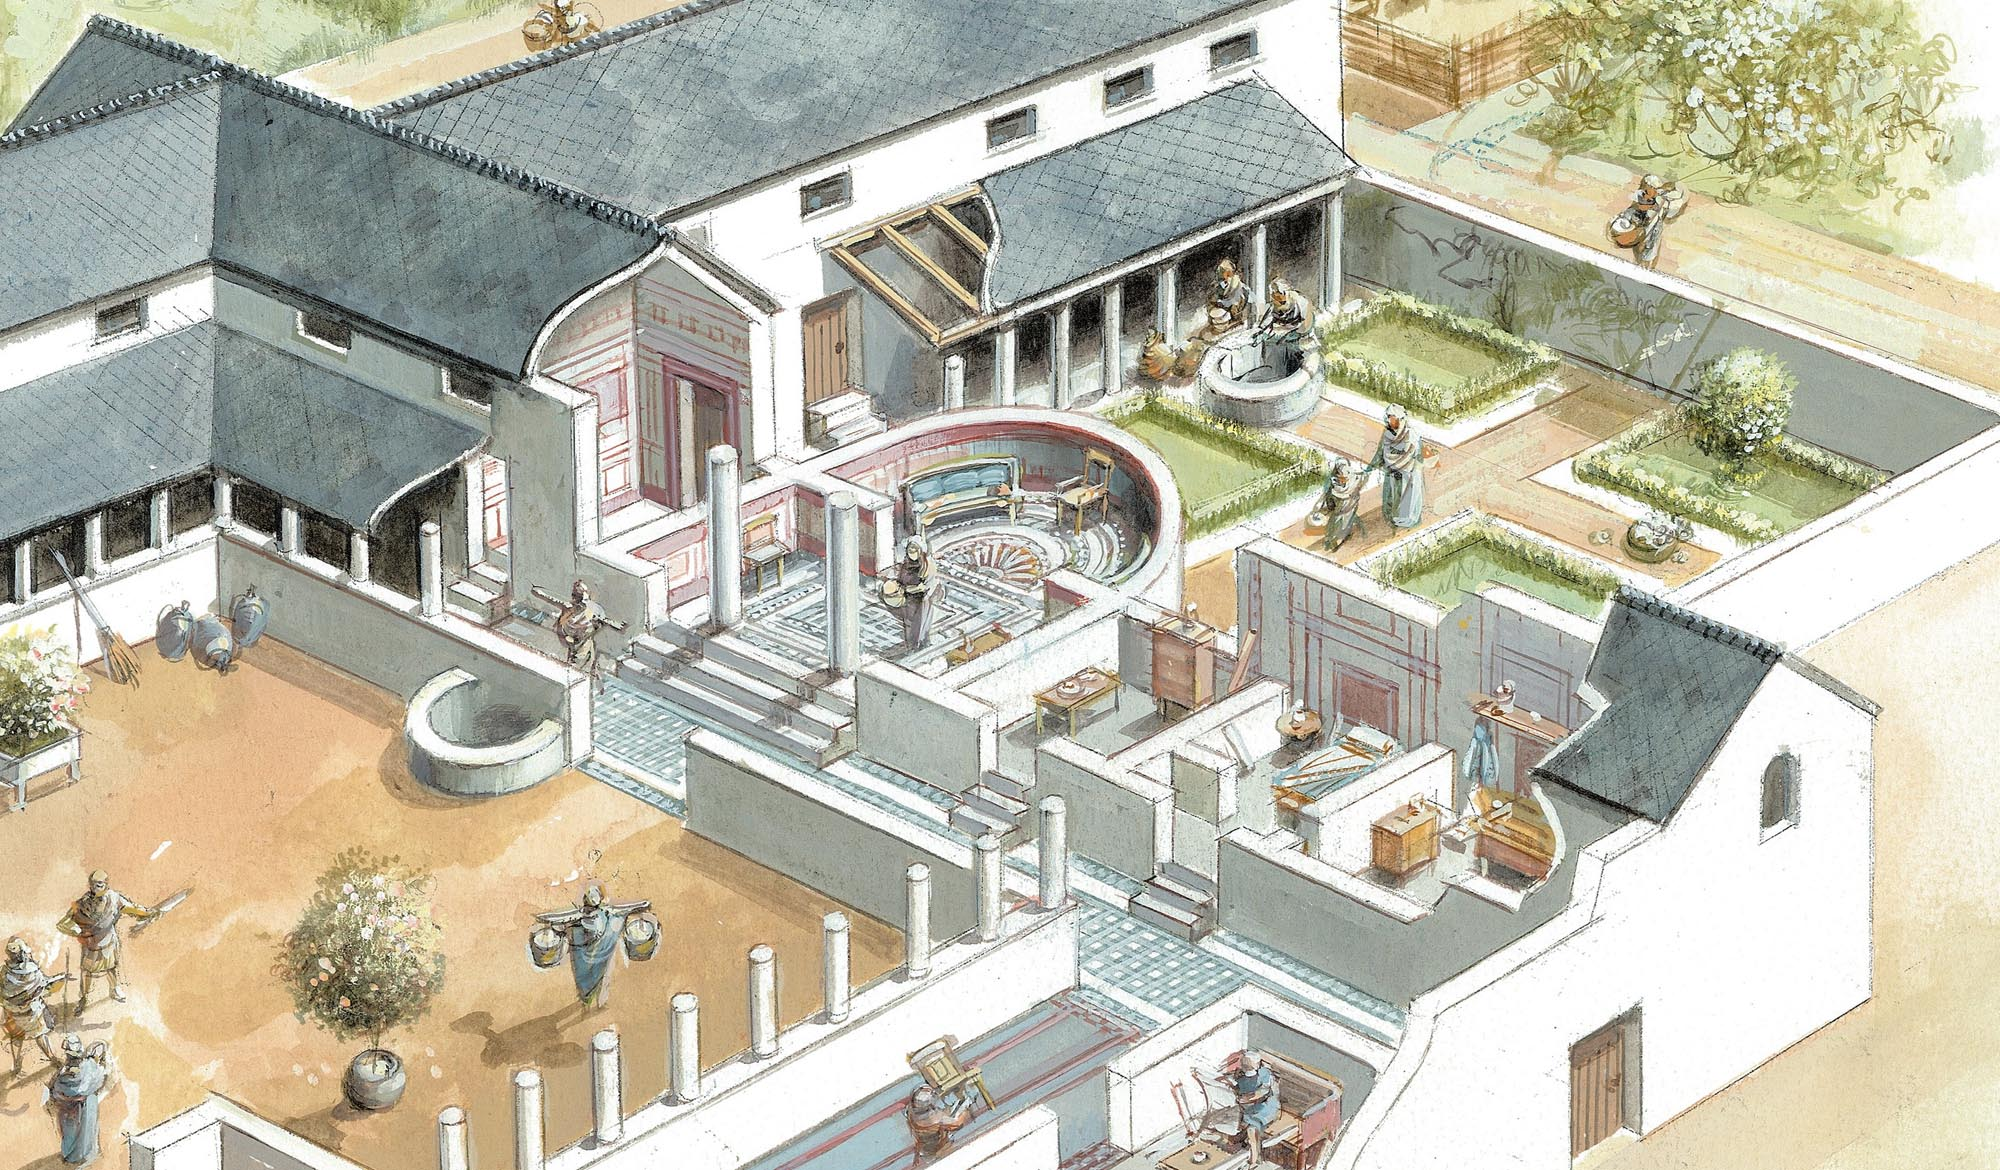 Vine Street courtyard house, detailed view - Mike Codd/University of Leicester Archaeological Services